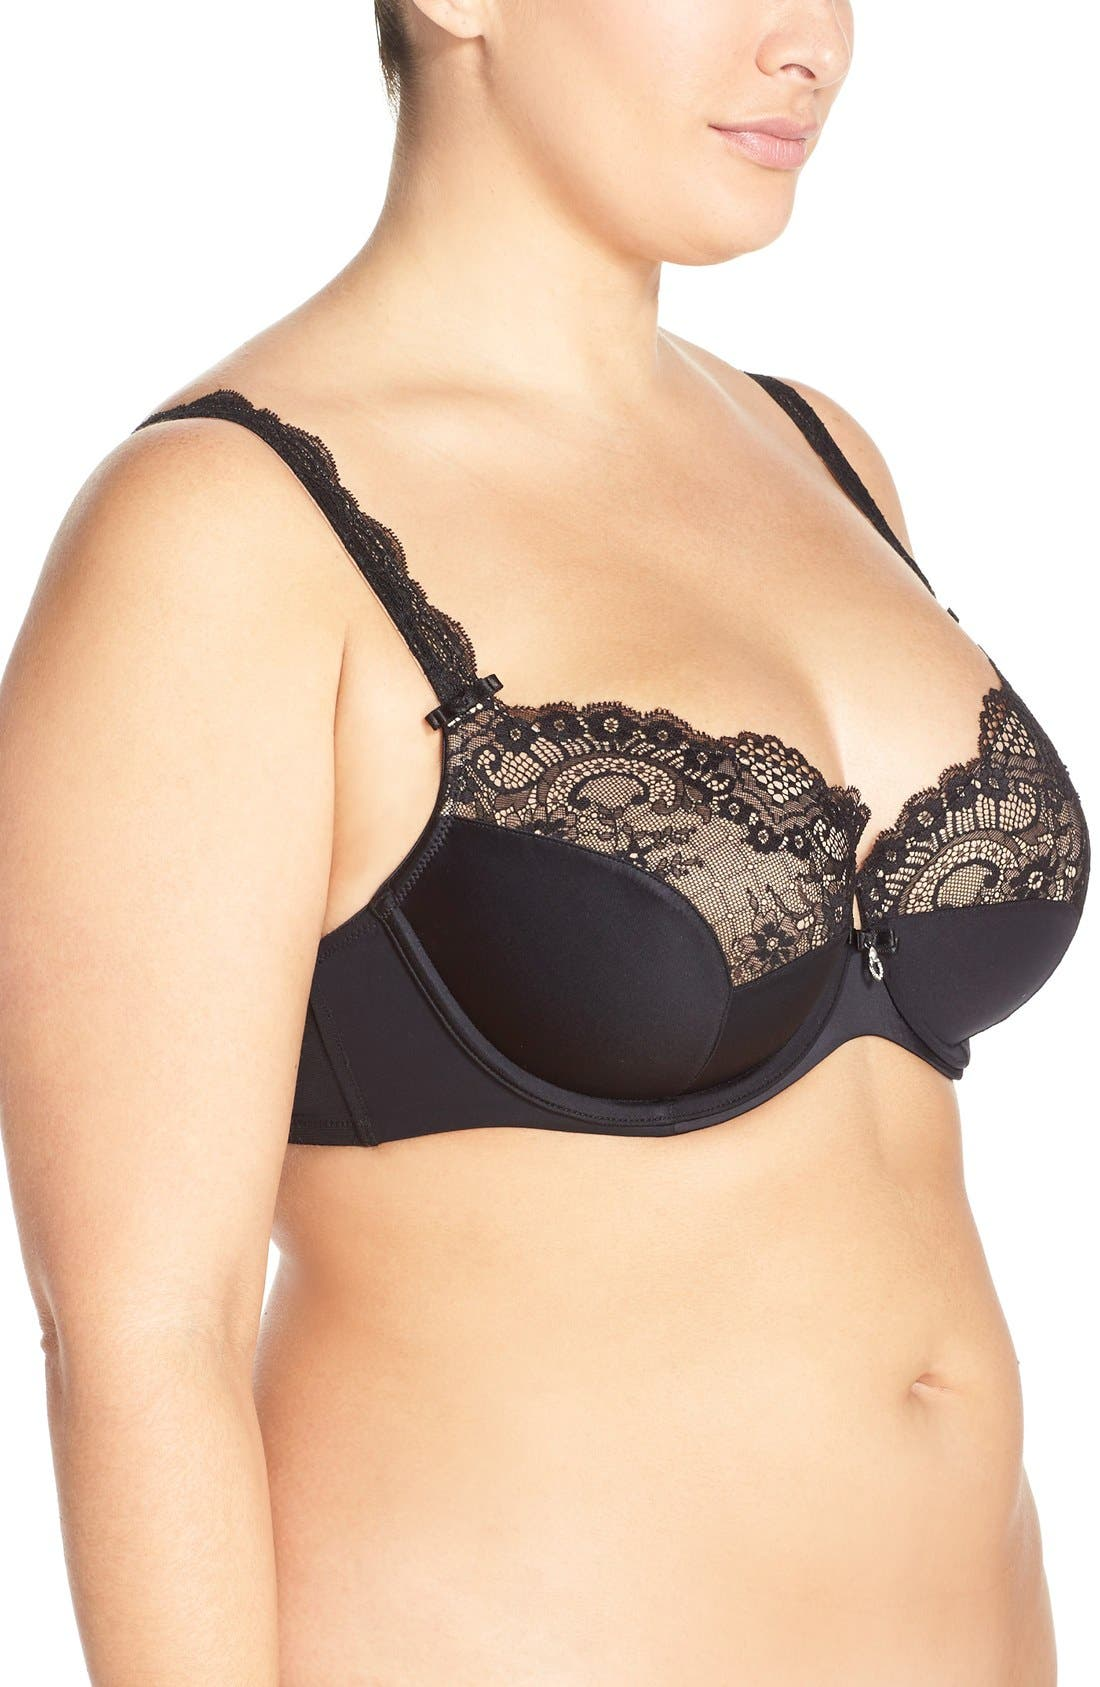 'Foxy' Lace Balconette Bra,                             Alternate thumbnail 3, color,                             BLACK